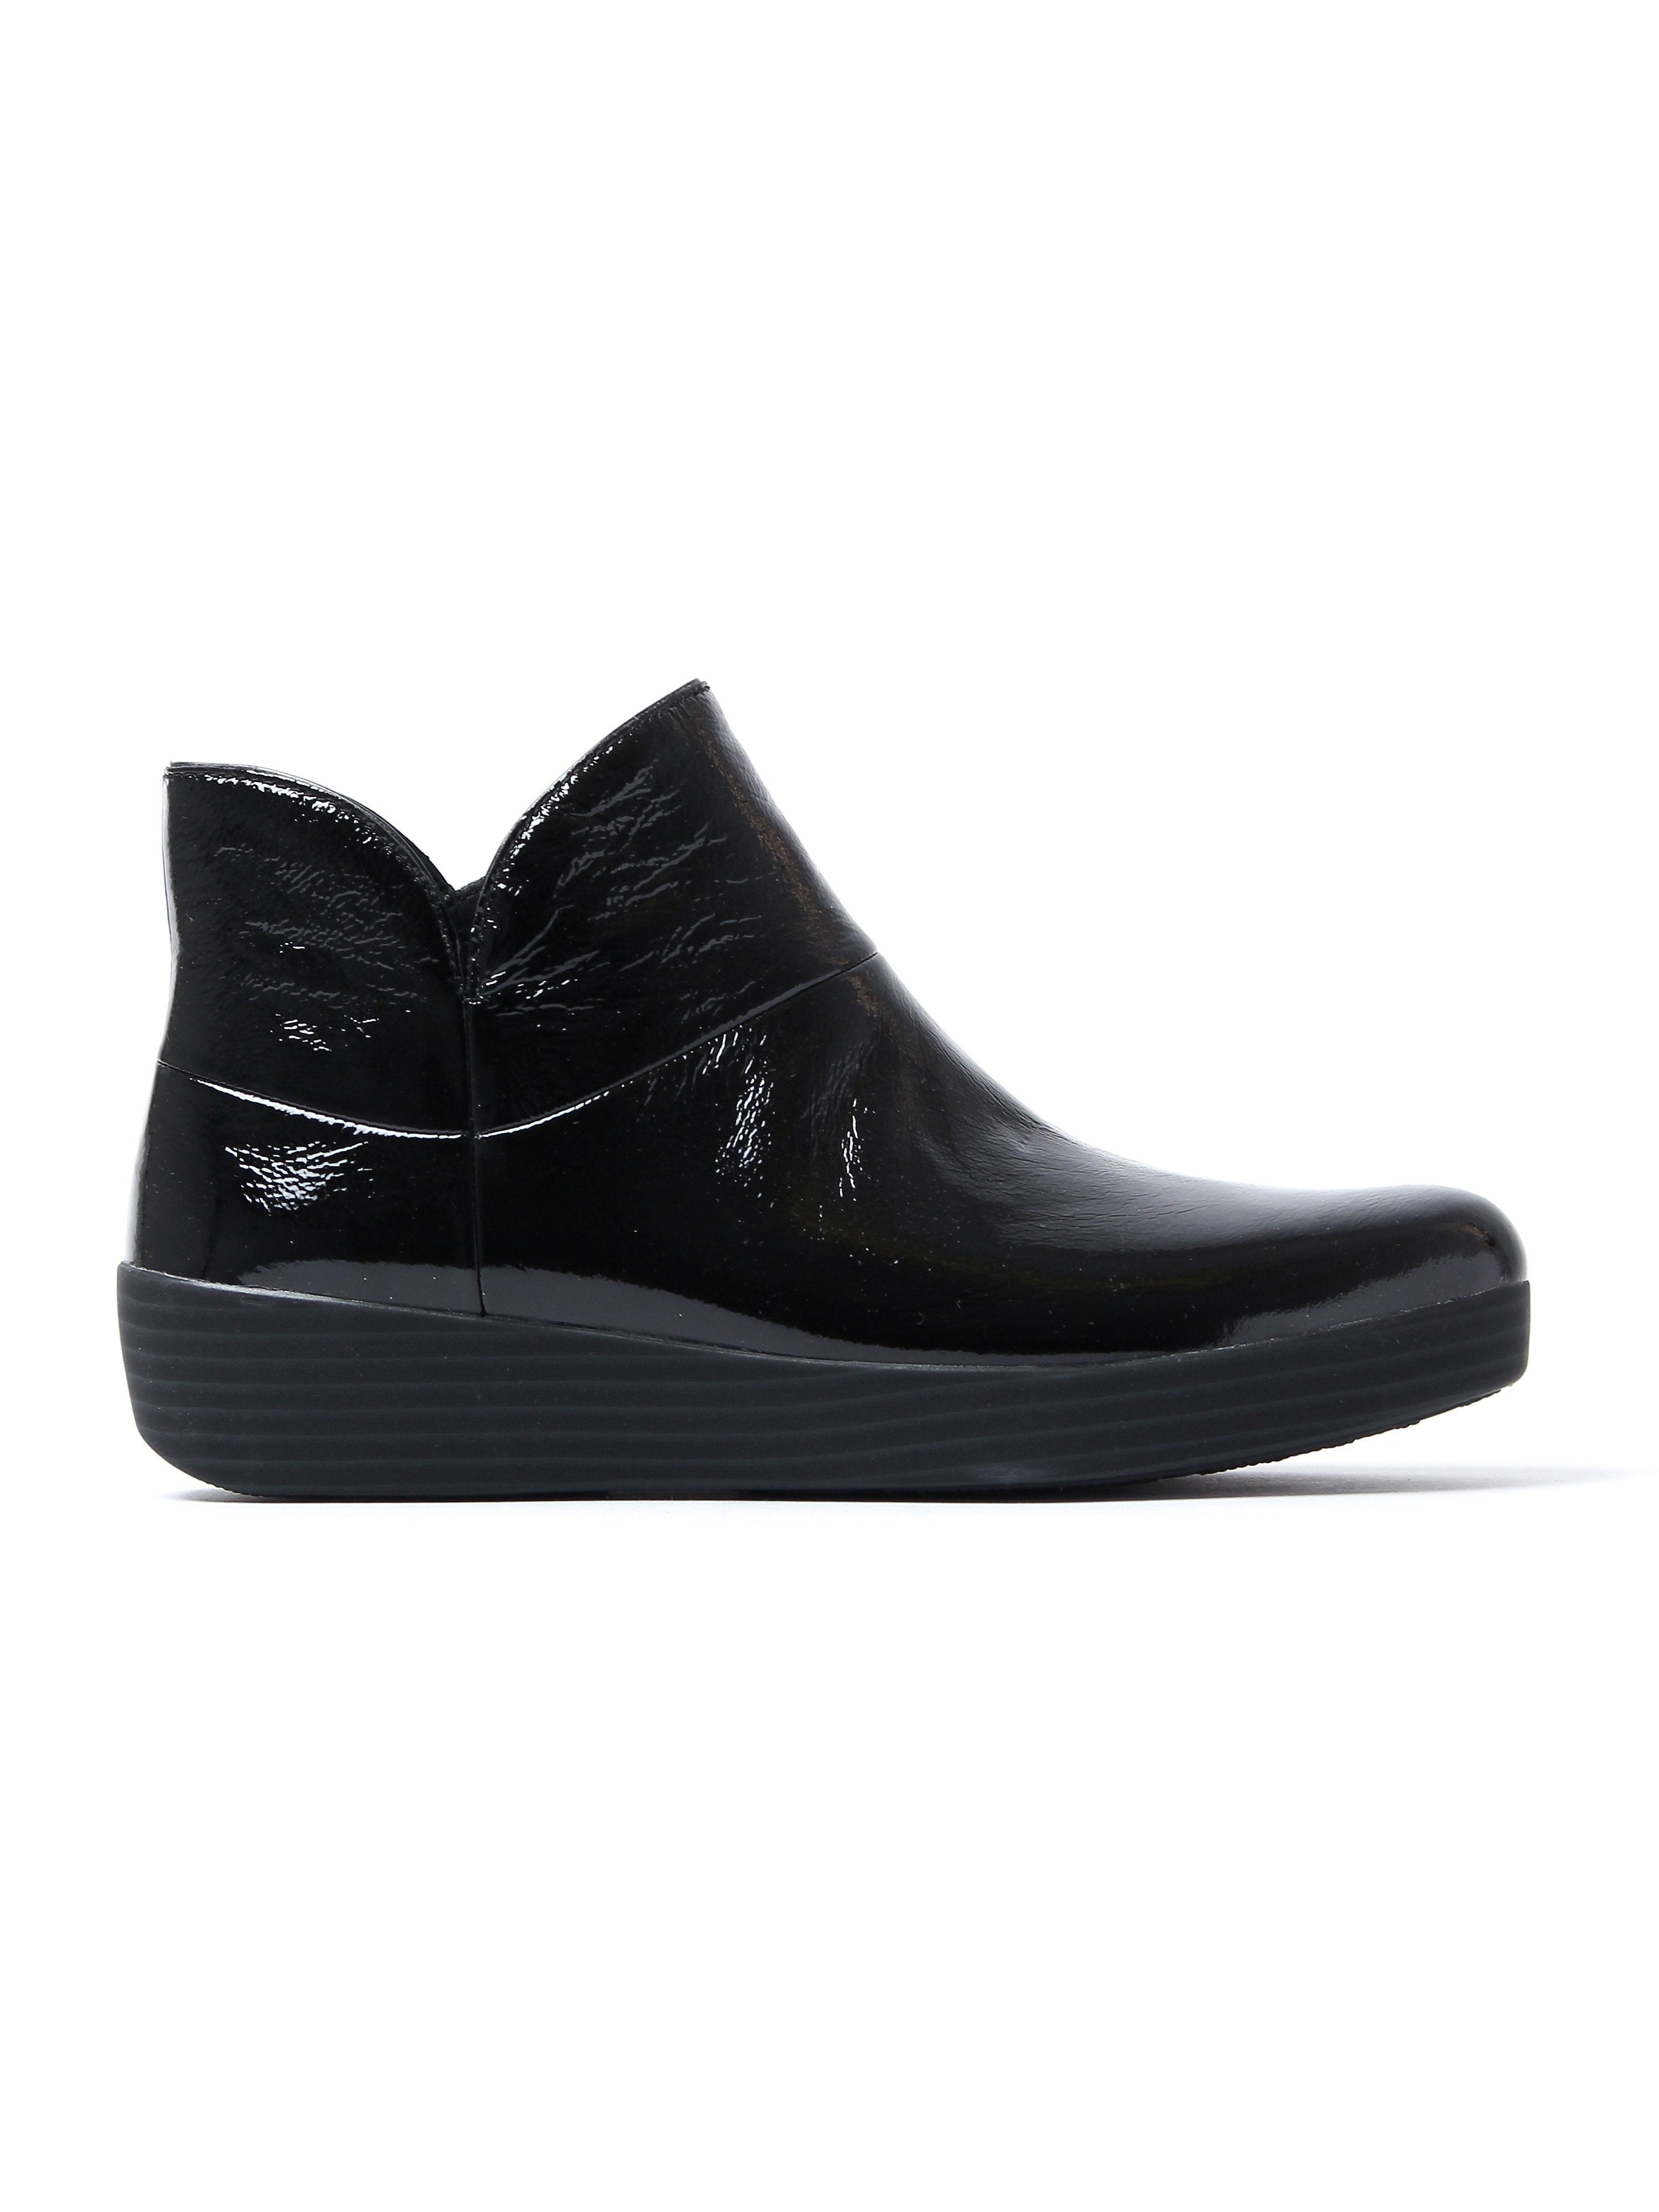 FitFlop Women's Supermod II Ankle Boots - Black Patent